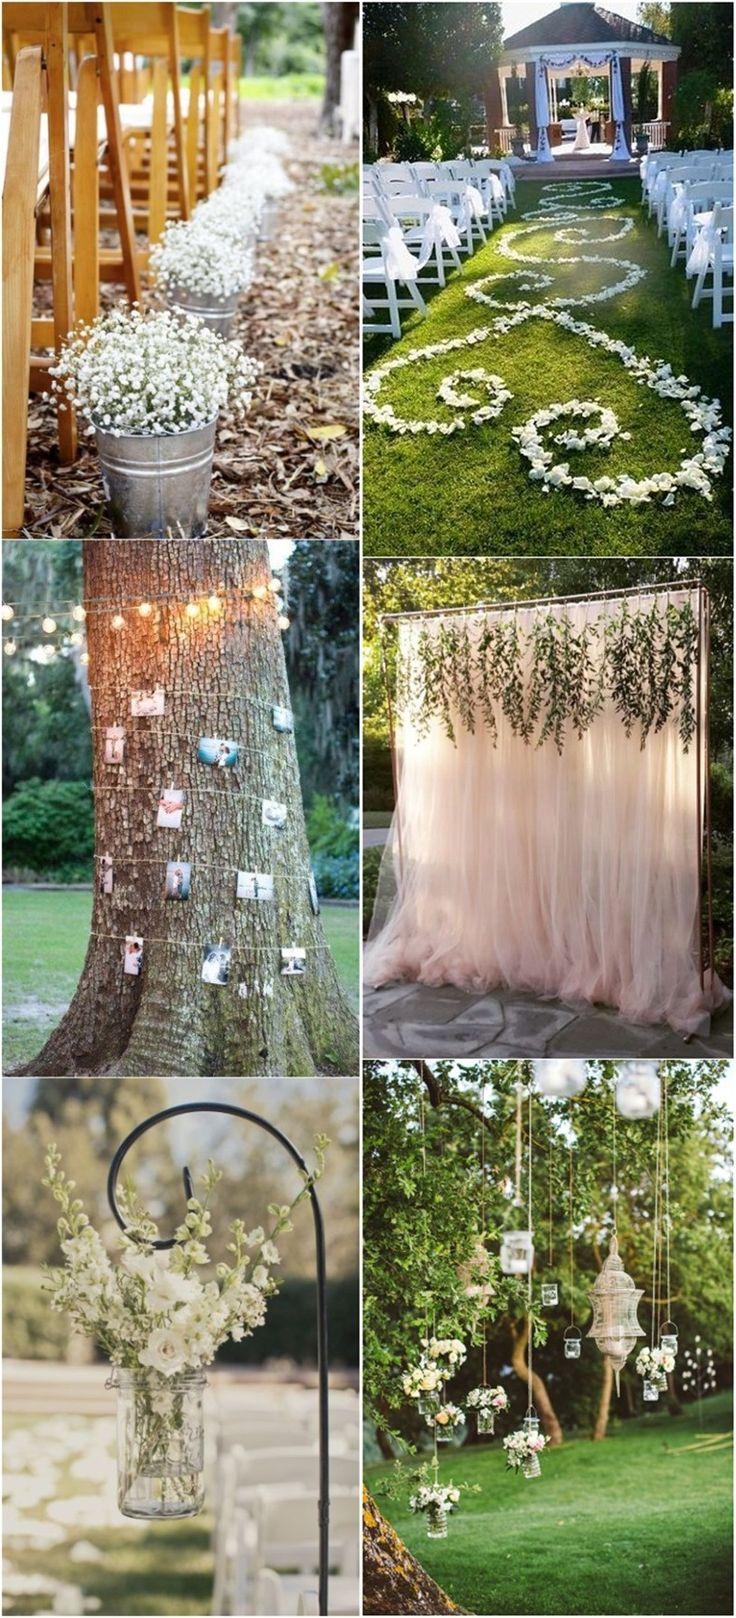 Genius Outdoor Wedding Ideas Outdoor Wedding Decorations Www Weddinginclud Perfectlifestyle Info News For A Perfect Life Fitness Fashion Lifestyle Health Beauty Recipes Travel Tips News Magazine